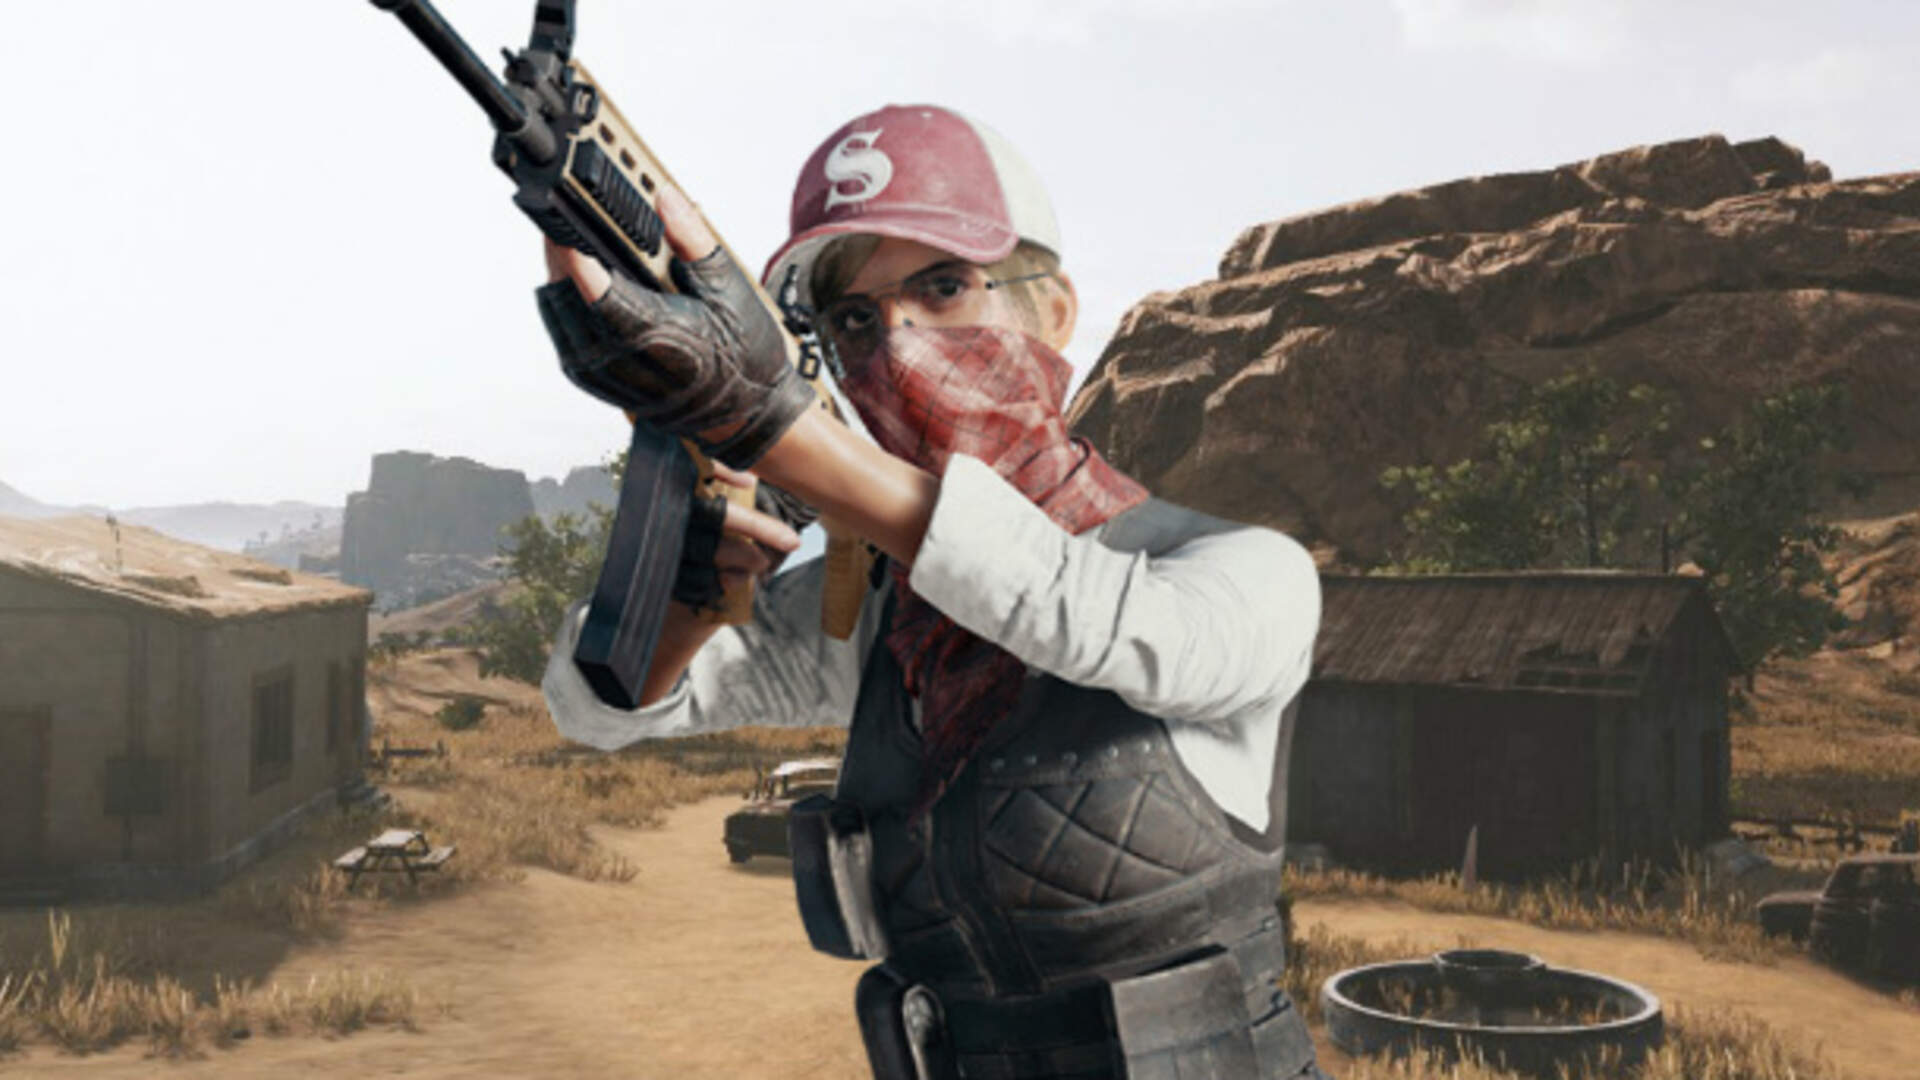 New PUBG Xbox One Patch Goes Live, Adds Auto-Run and New Bug Fixes